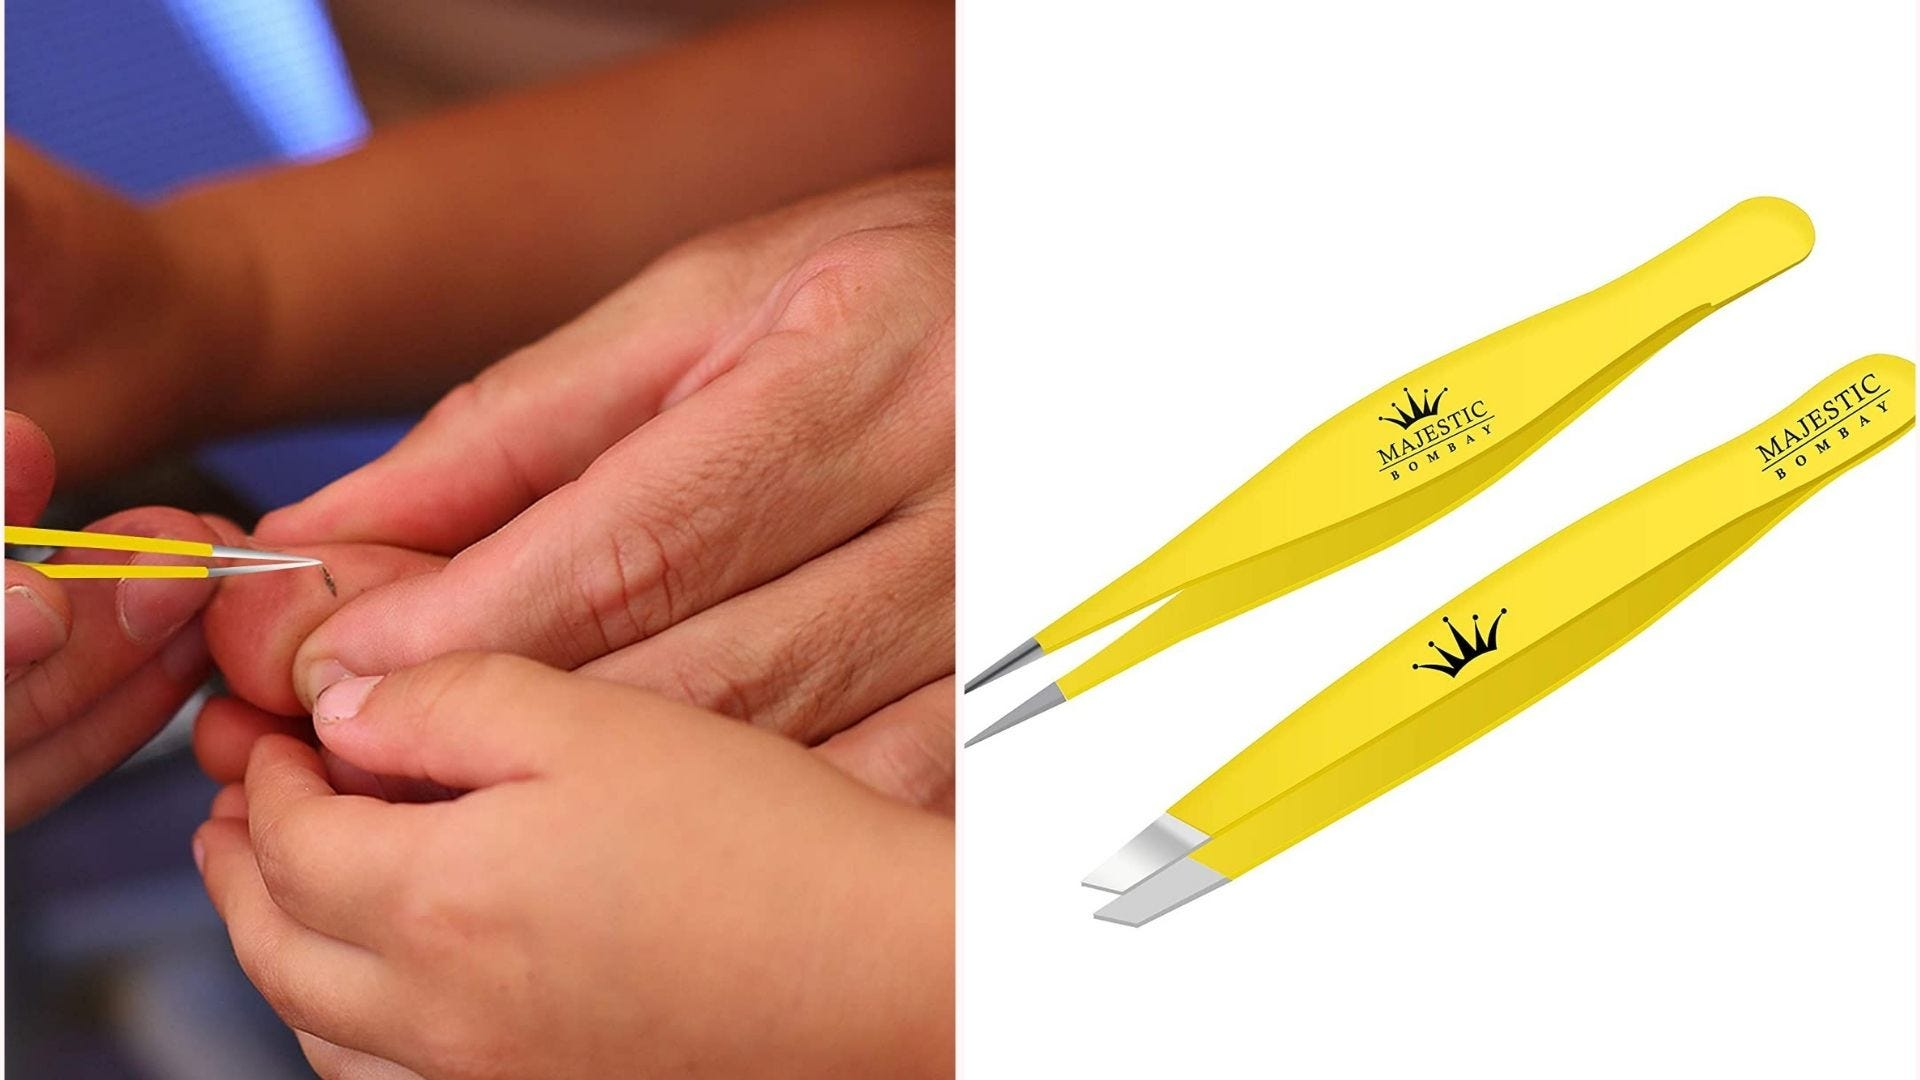 yellow tweezers with silver tips; someone uses a pair to pull a sliver from a toe